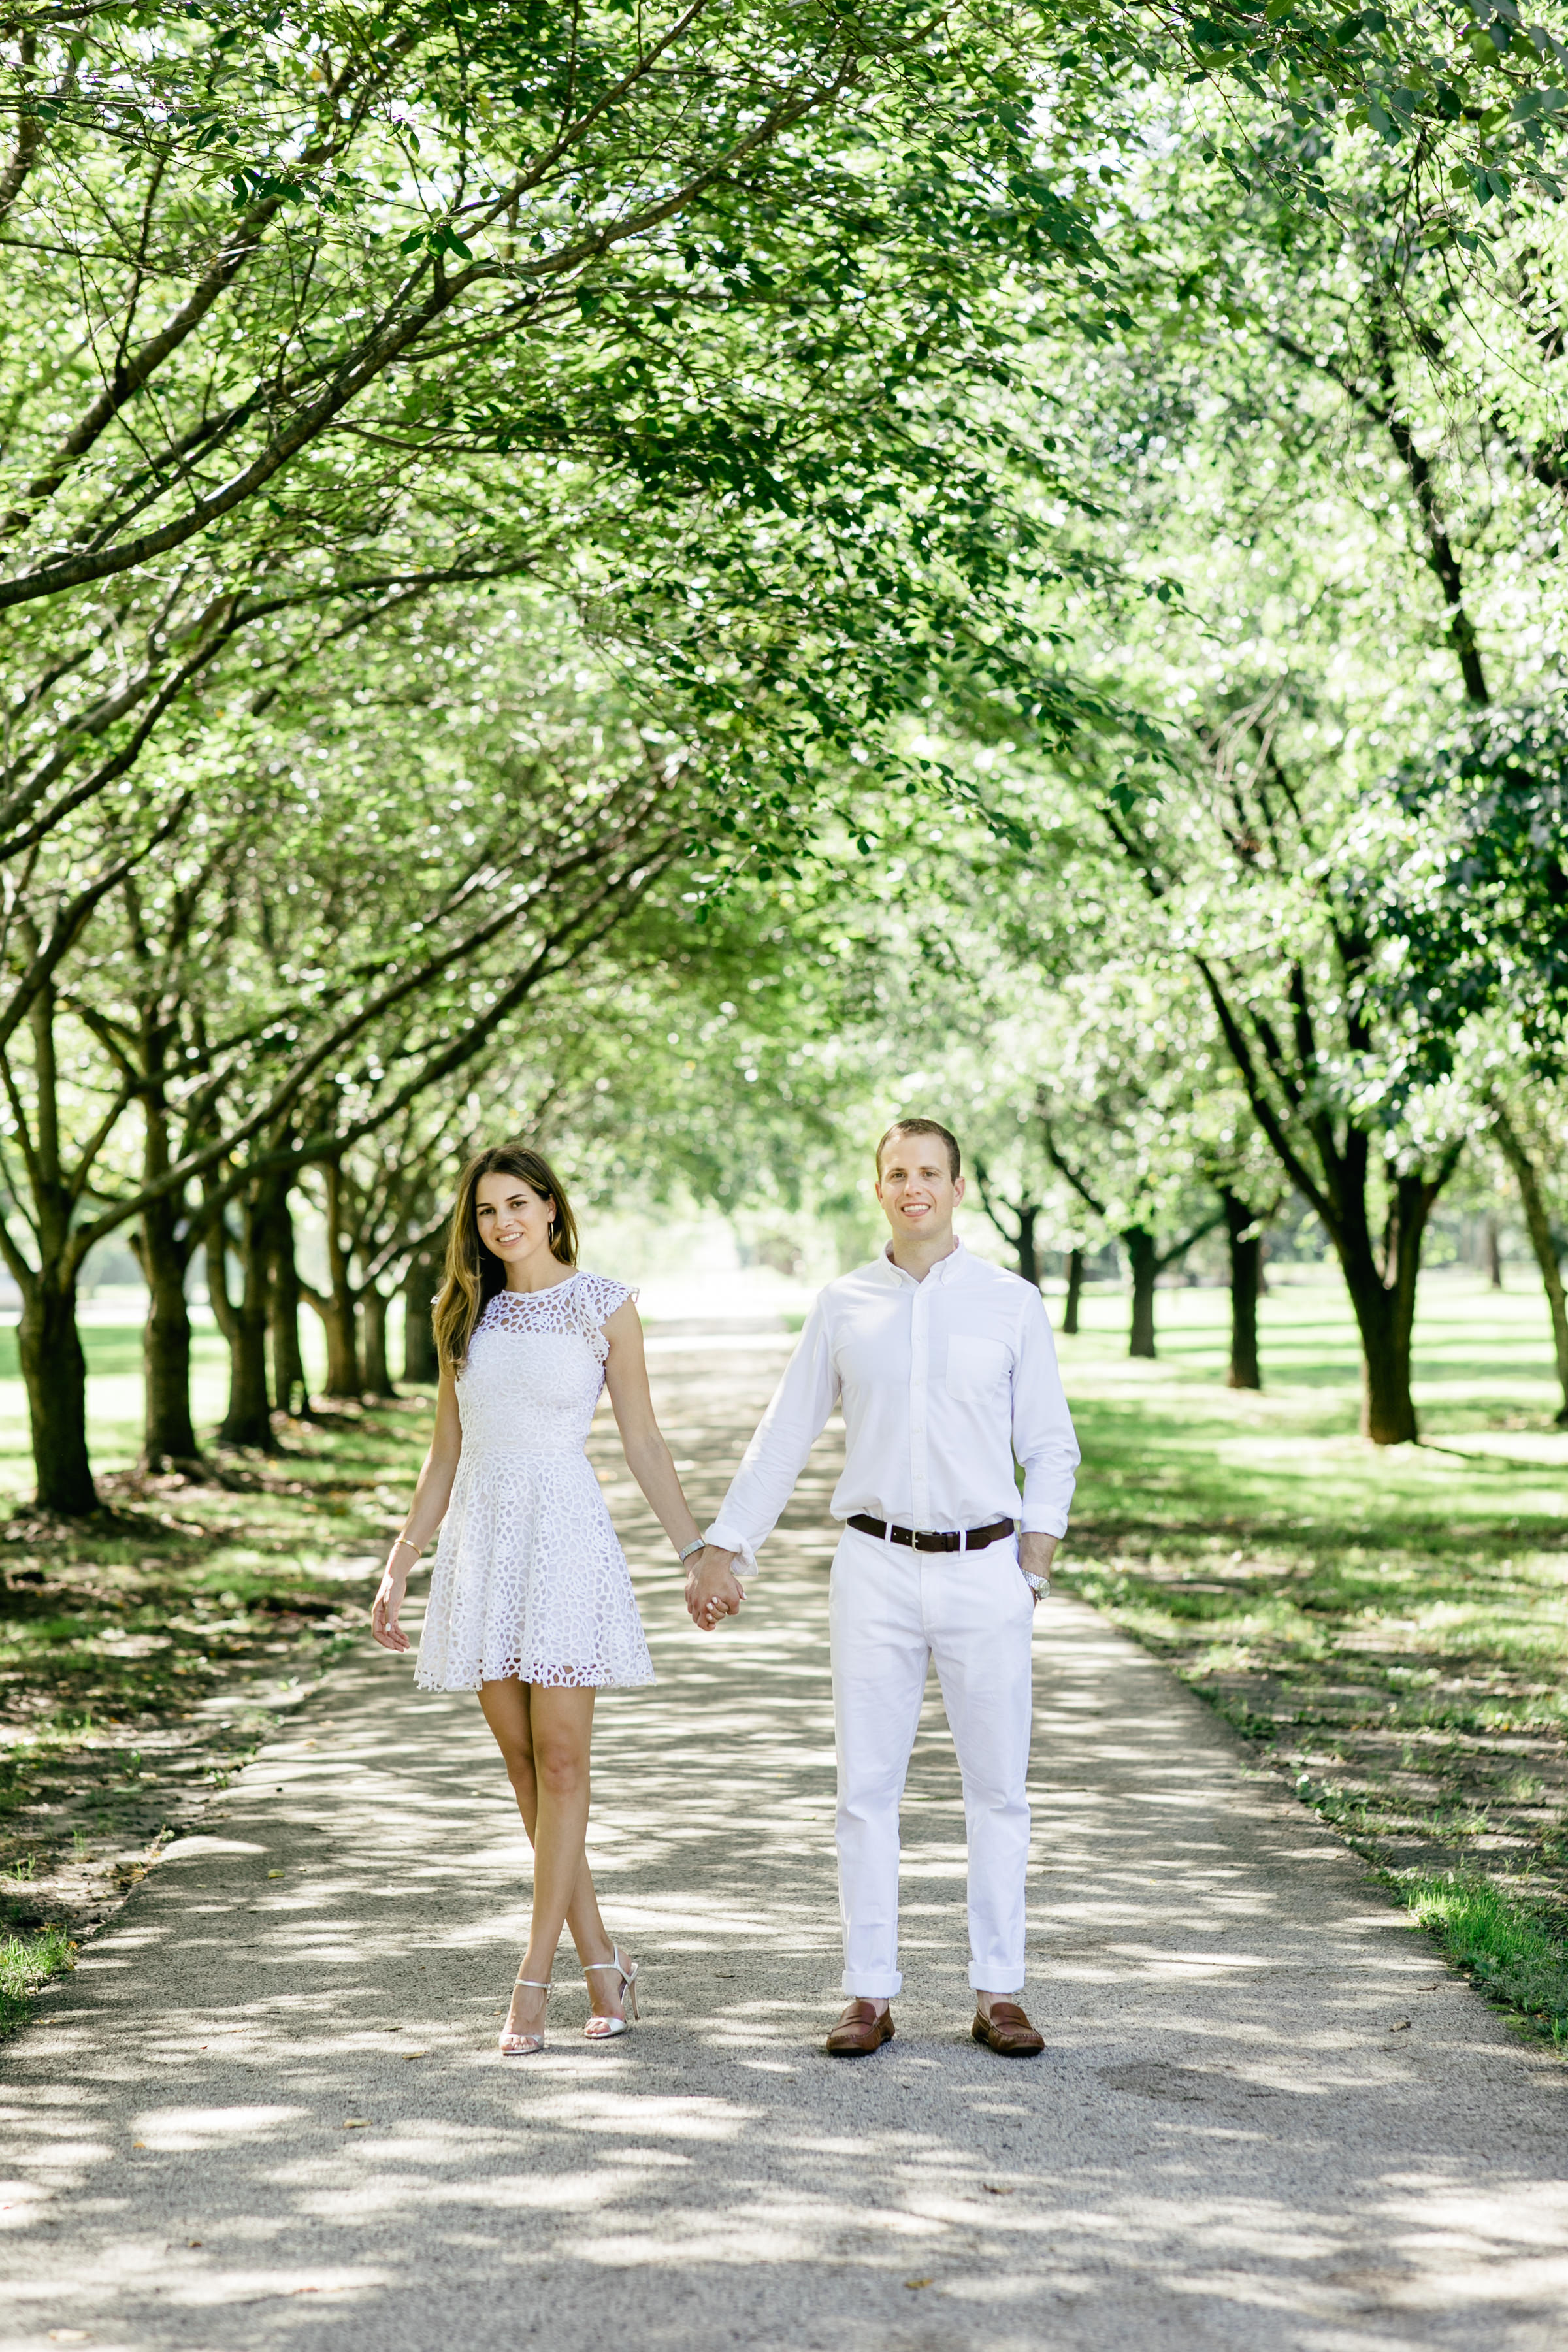 photography-family-natural-candid-engaged-fairmount-philadelphia-wedding-horticultural center-modern-lifestyle-04.JPG